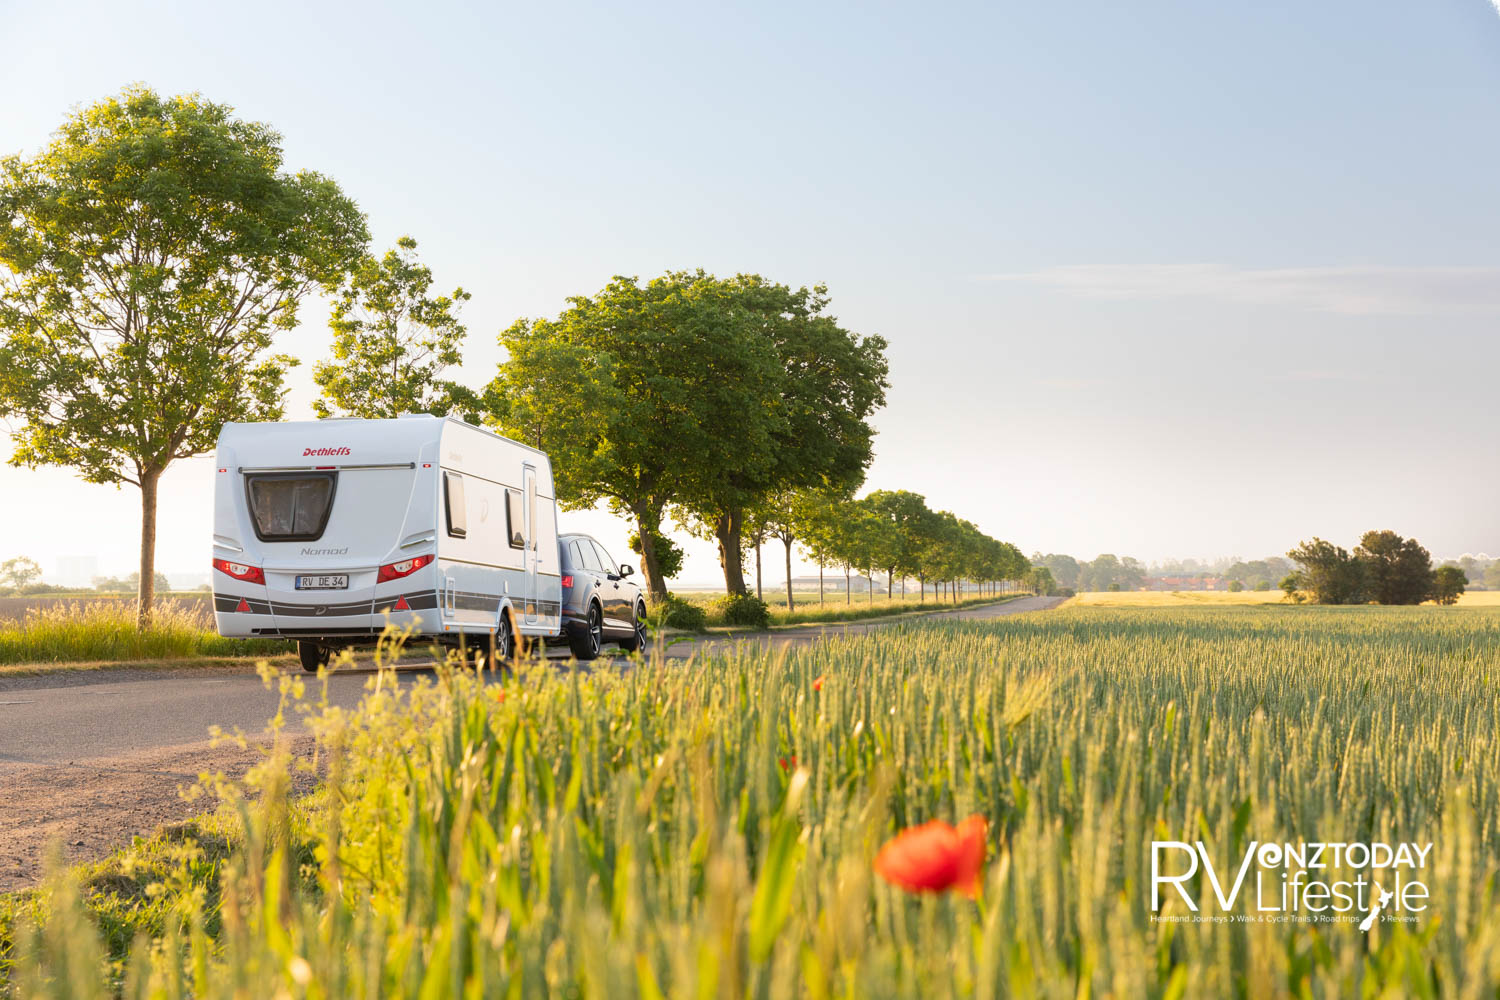 The Nomad 490 EST is a single axle caravan with a good towing weight of 1800kg. (Single and tandem axle available in other Nomad layouts with GVM from 1800-2500kg.)